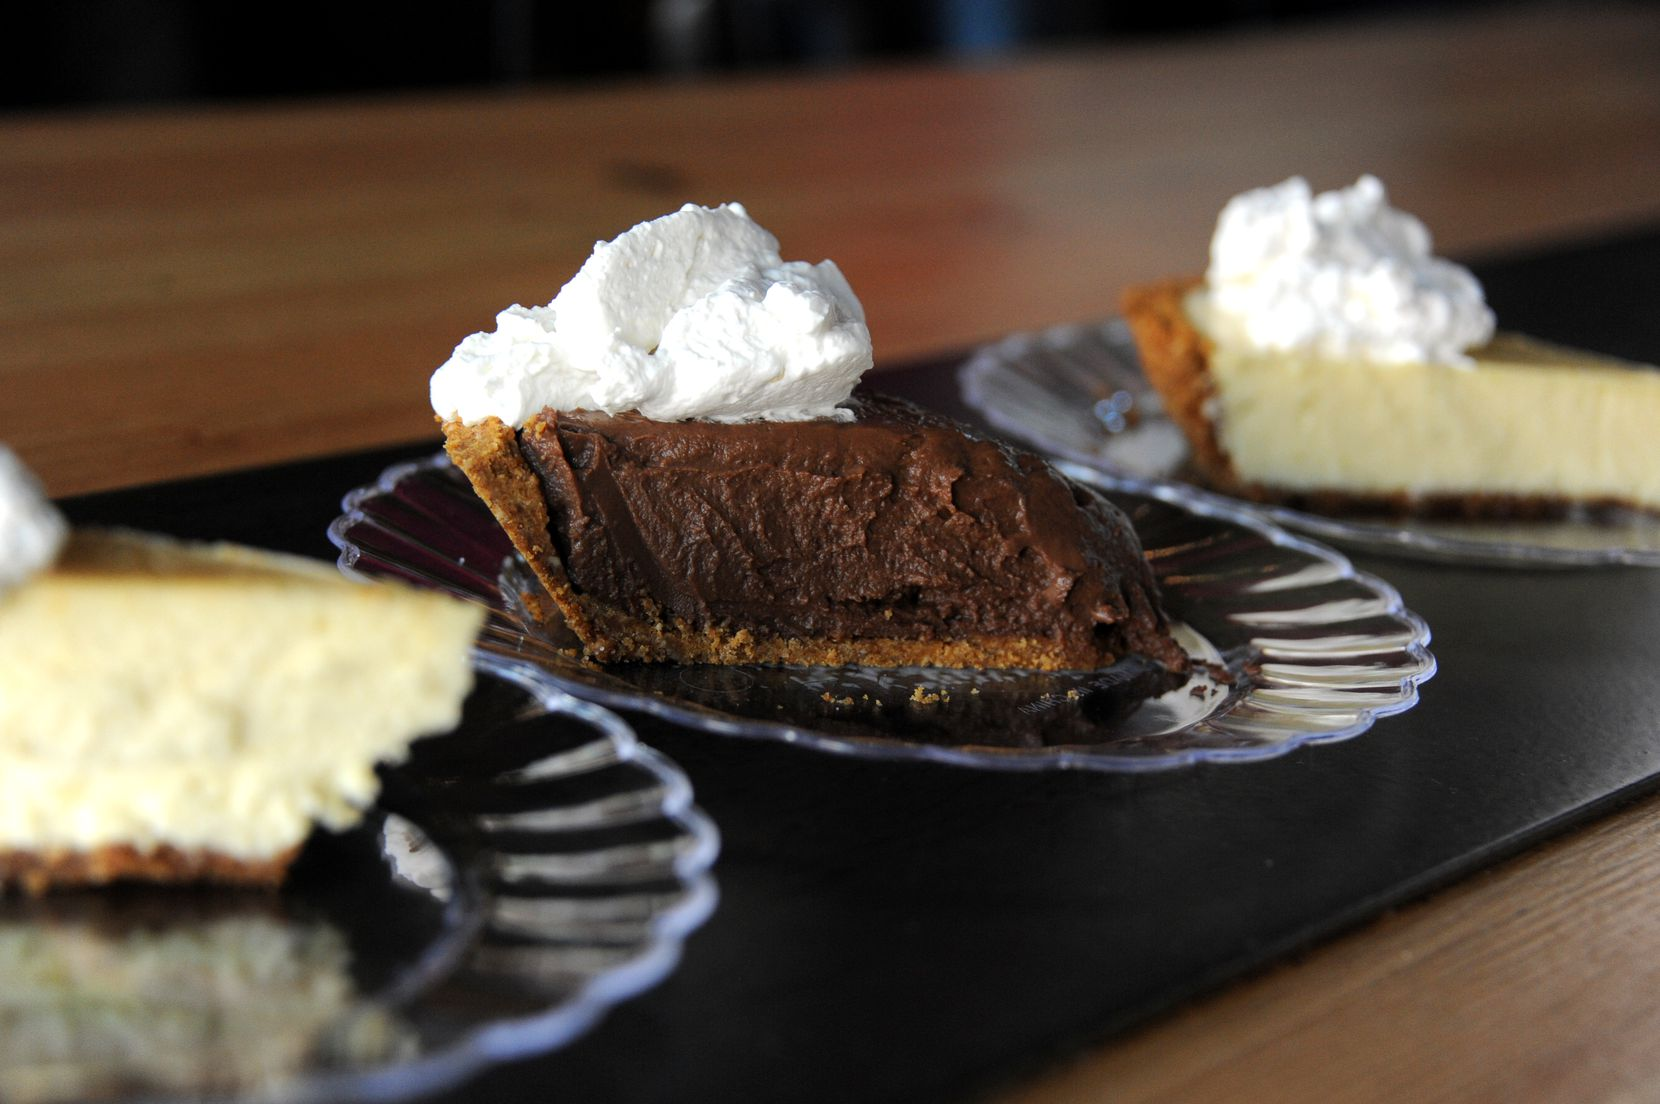 The pies, like this chocolate cream slice, come from Ann Lavine's recipe book. Ann's husband Larry Lavine founded Chili's.